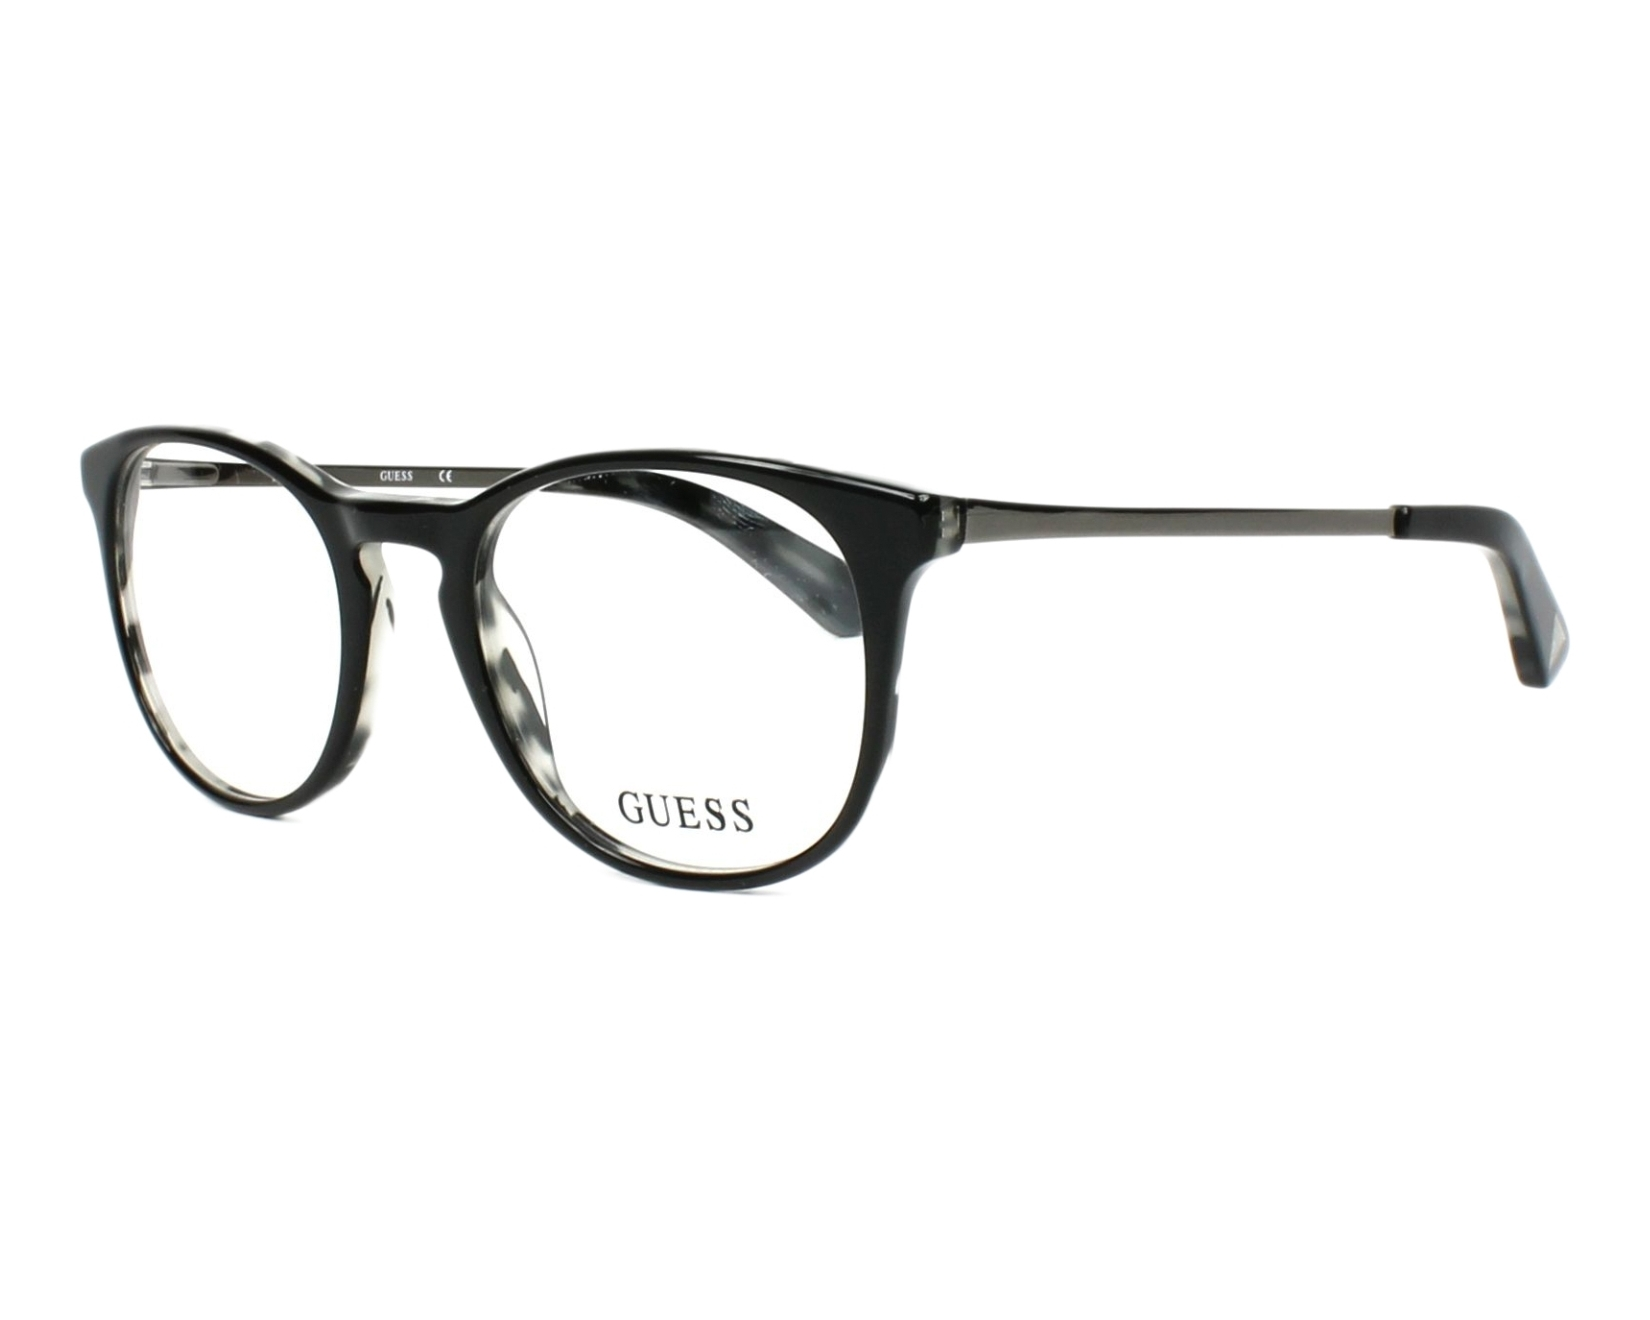 eyeglasses Guess GU-2531 001 49-20 Black Gun profile view